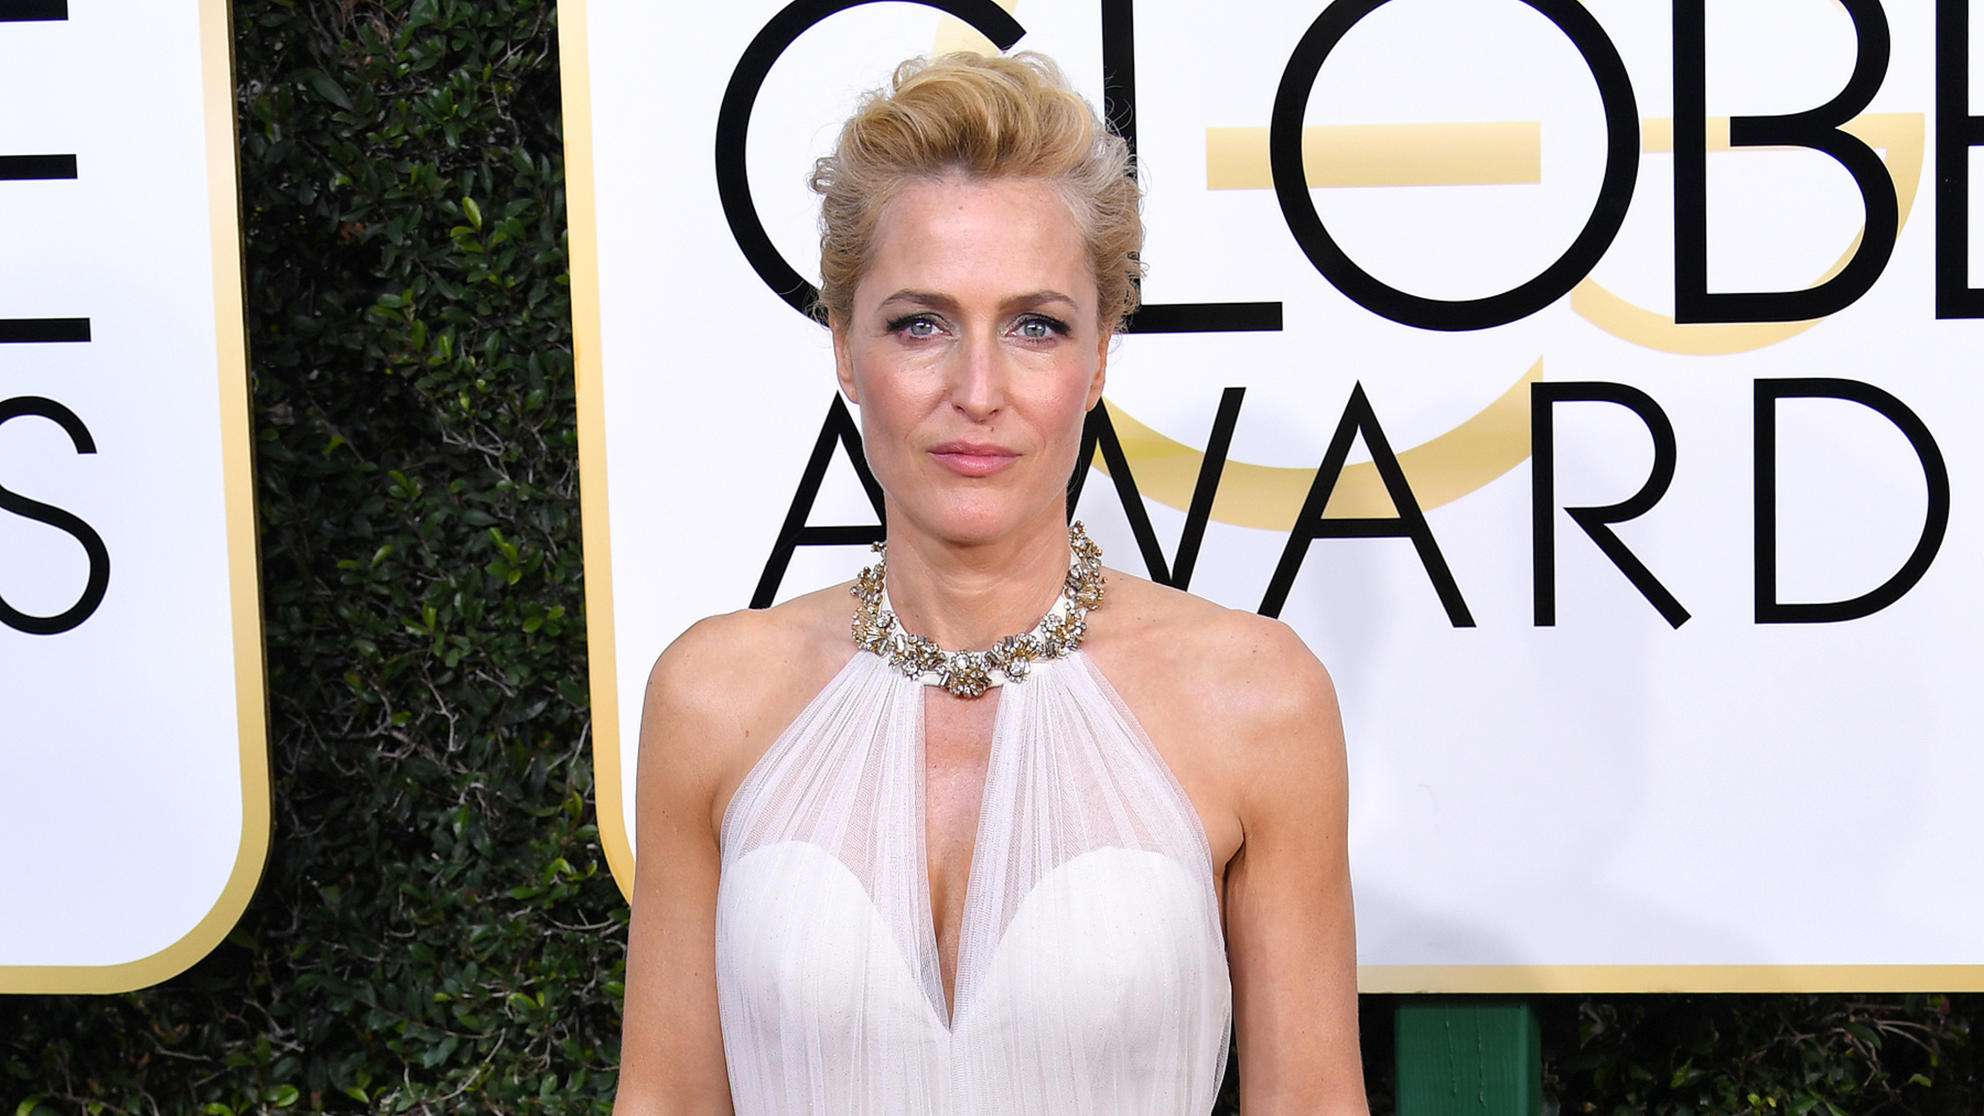 Gillian Anderson Reveals Her Battle with Crippling Depression That Left Her Unable to Leave Her House